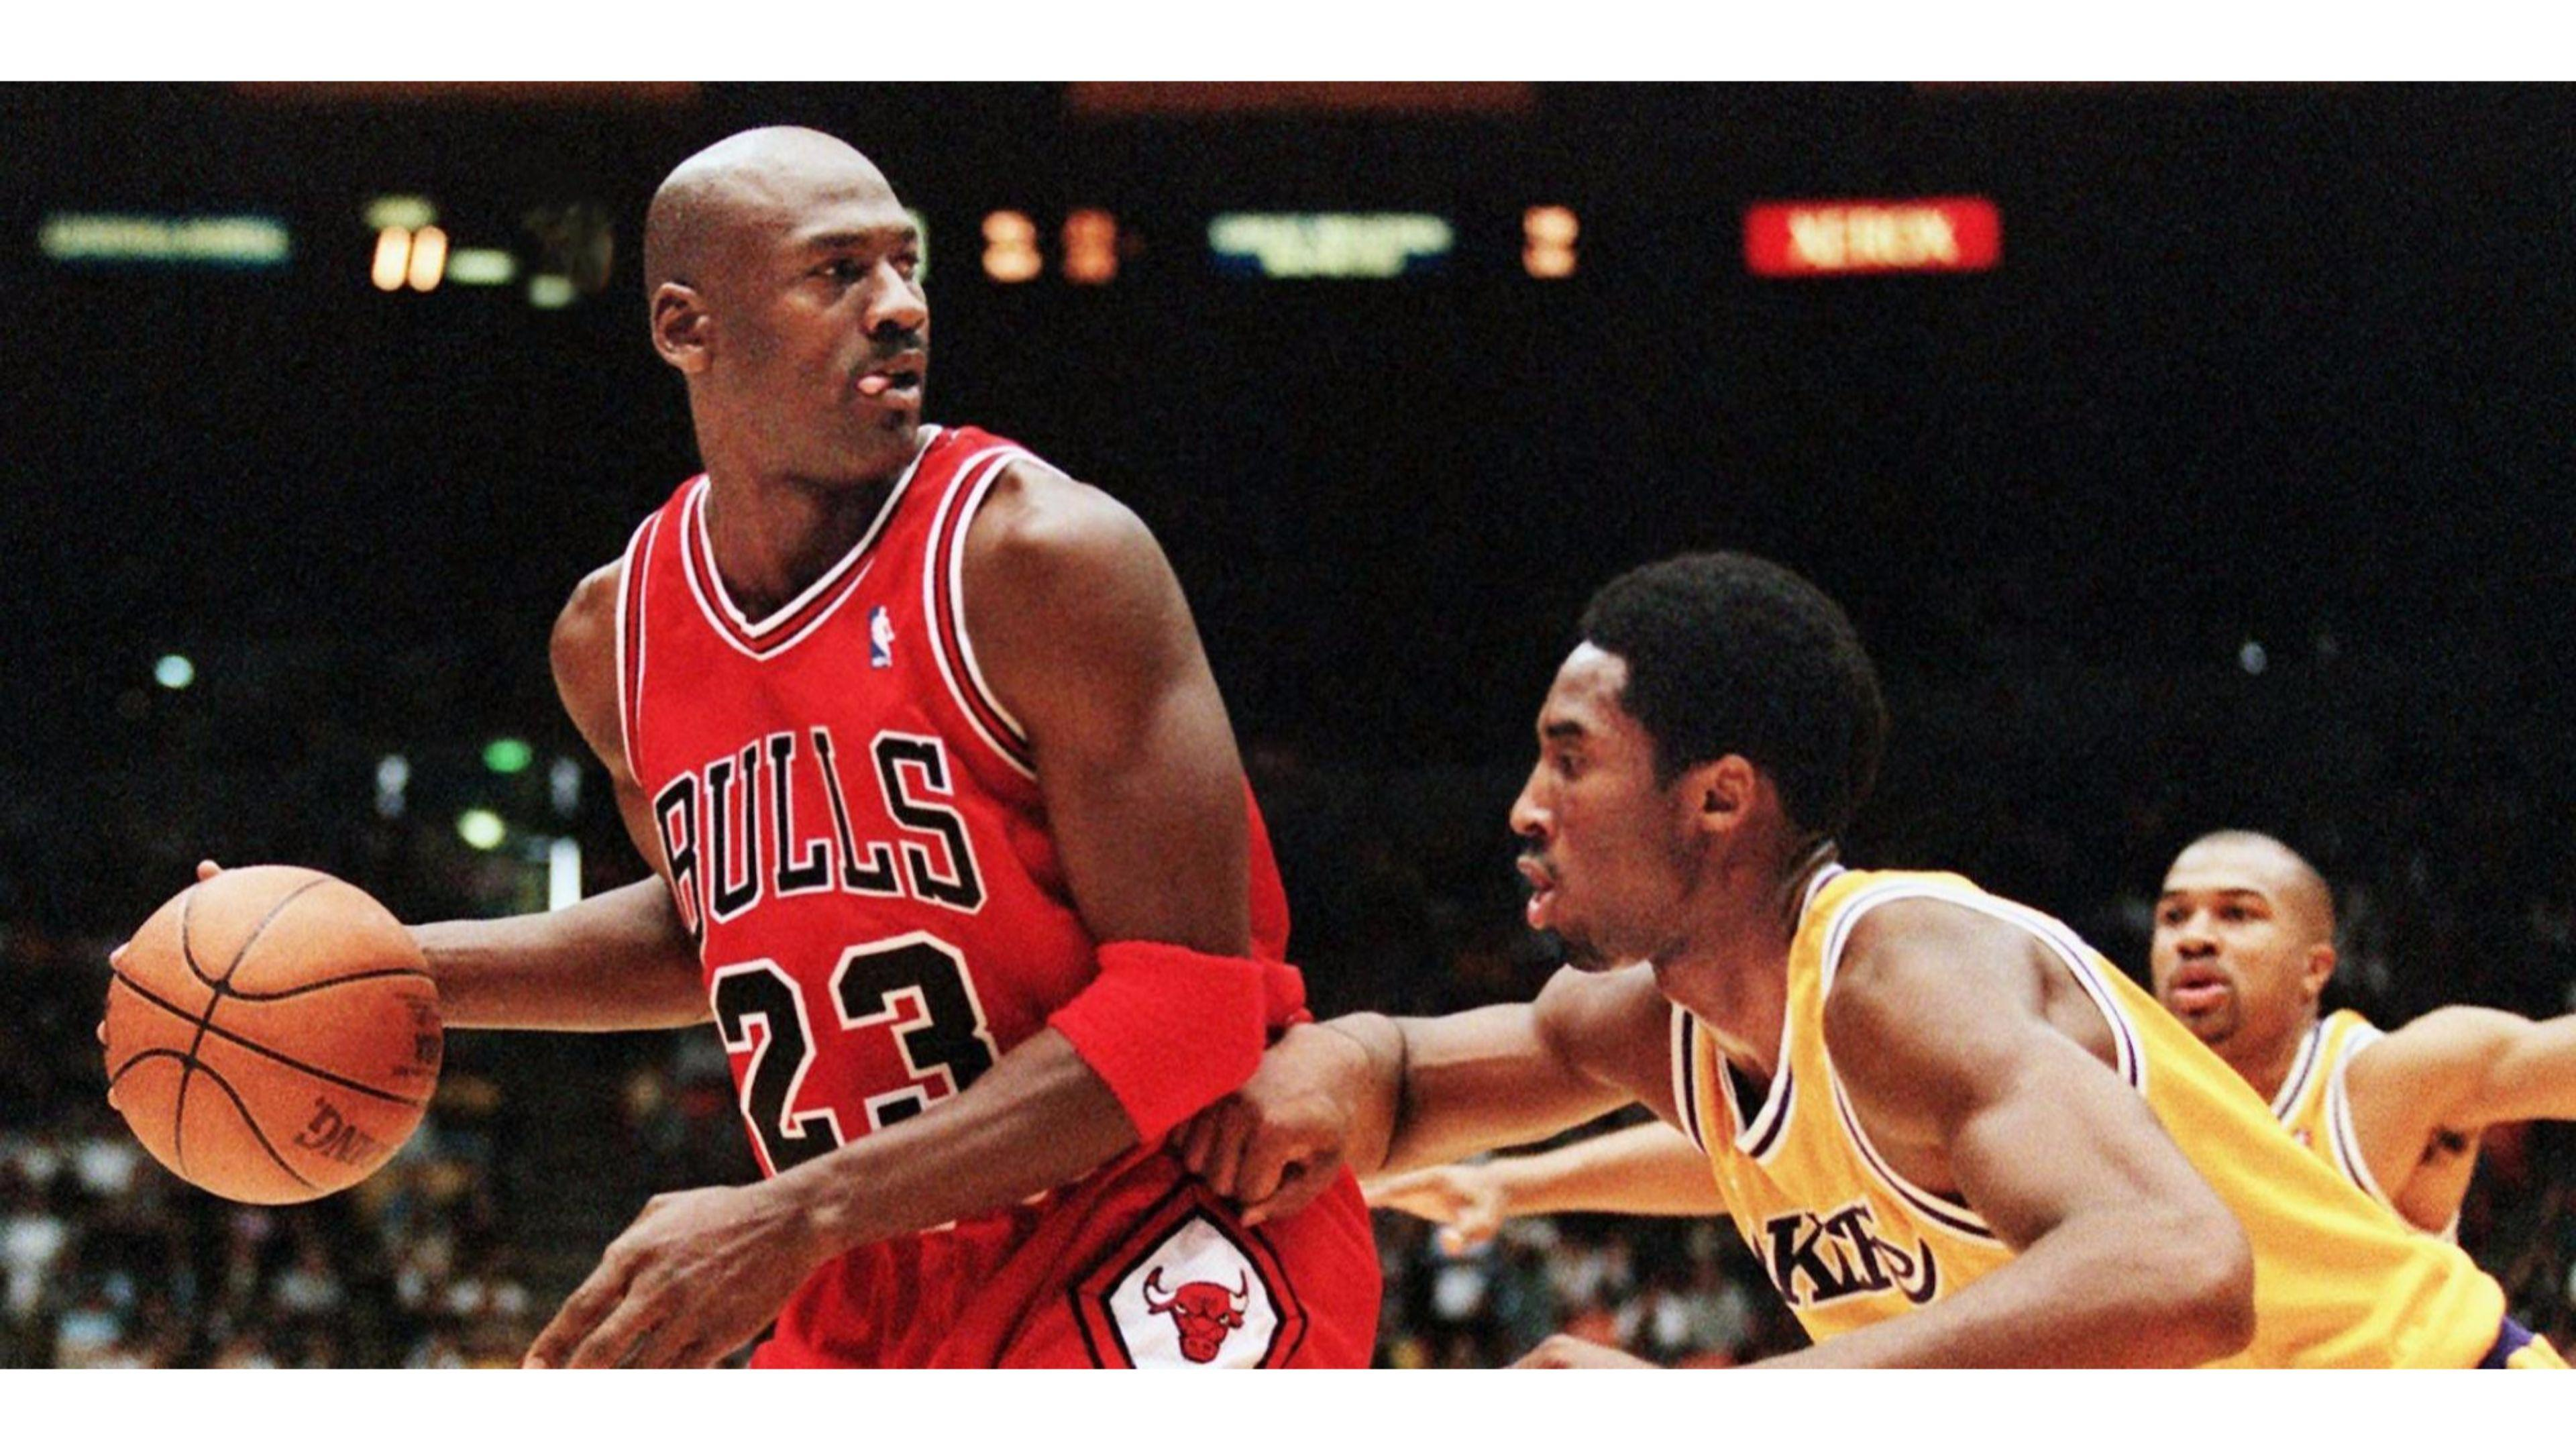 michael jordan and kobe bryant essay Compare/contrast essay on michael jordan n kobe bryant help  at retirement, kobe will have put more  compare/contrast michael jordan and kobe bryant.